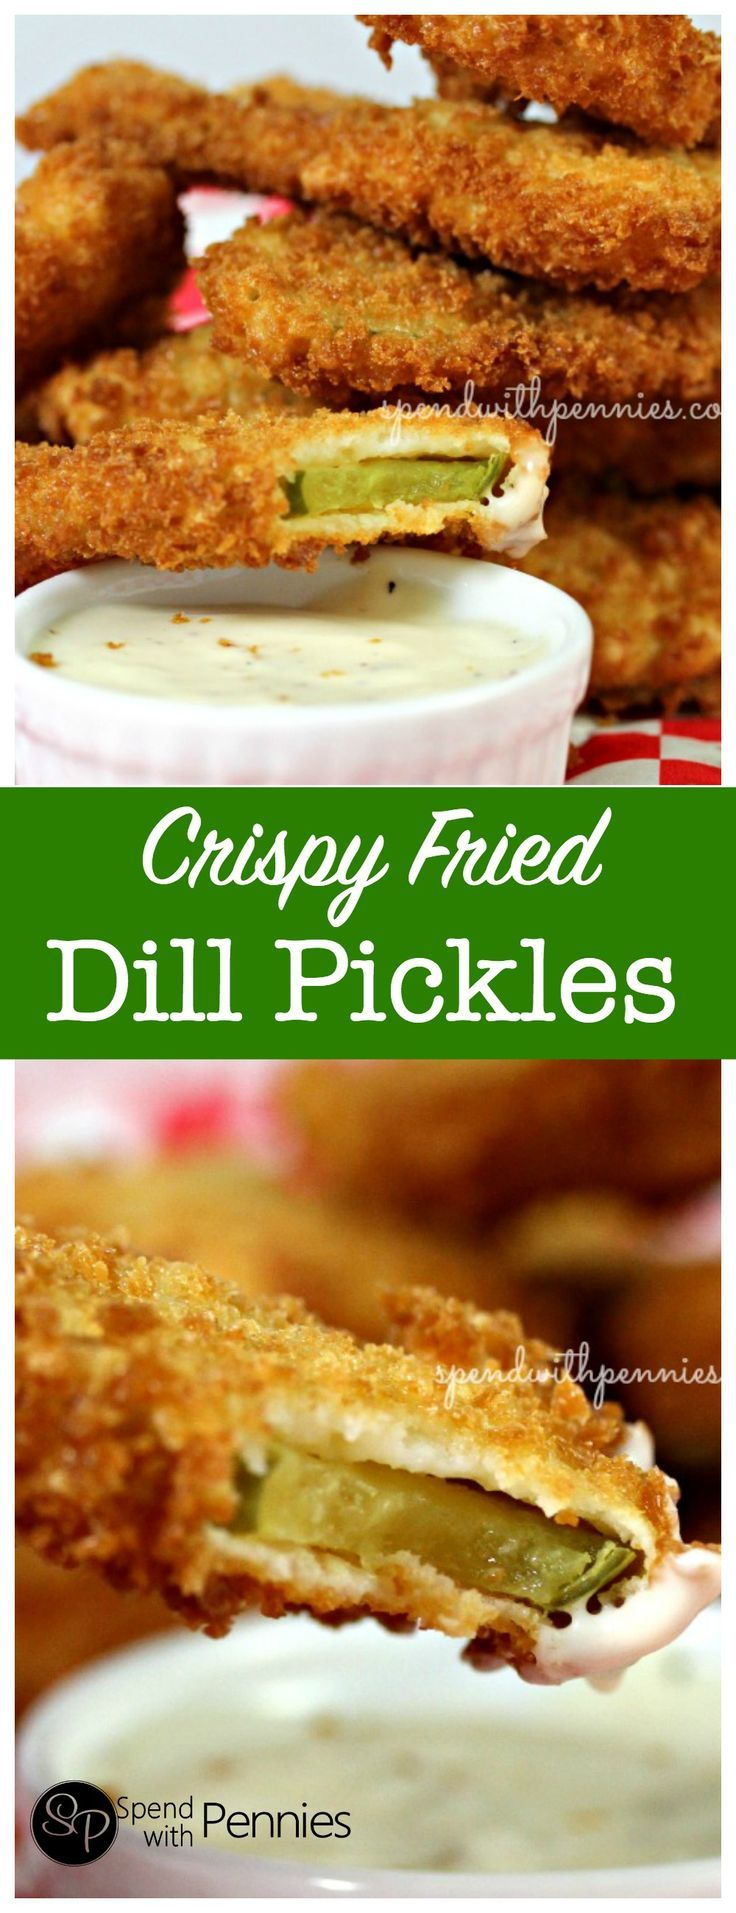 Crispy Deep Fried Pickles!!  If you've never tried these, they have to go on your MUST TRY list!